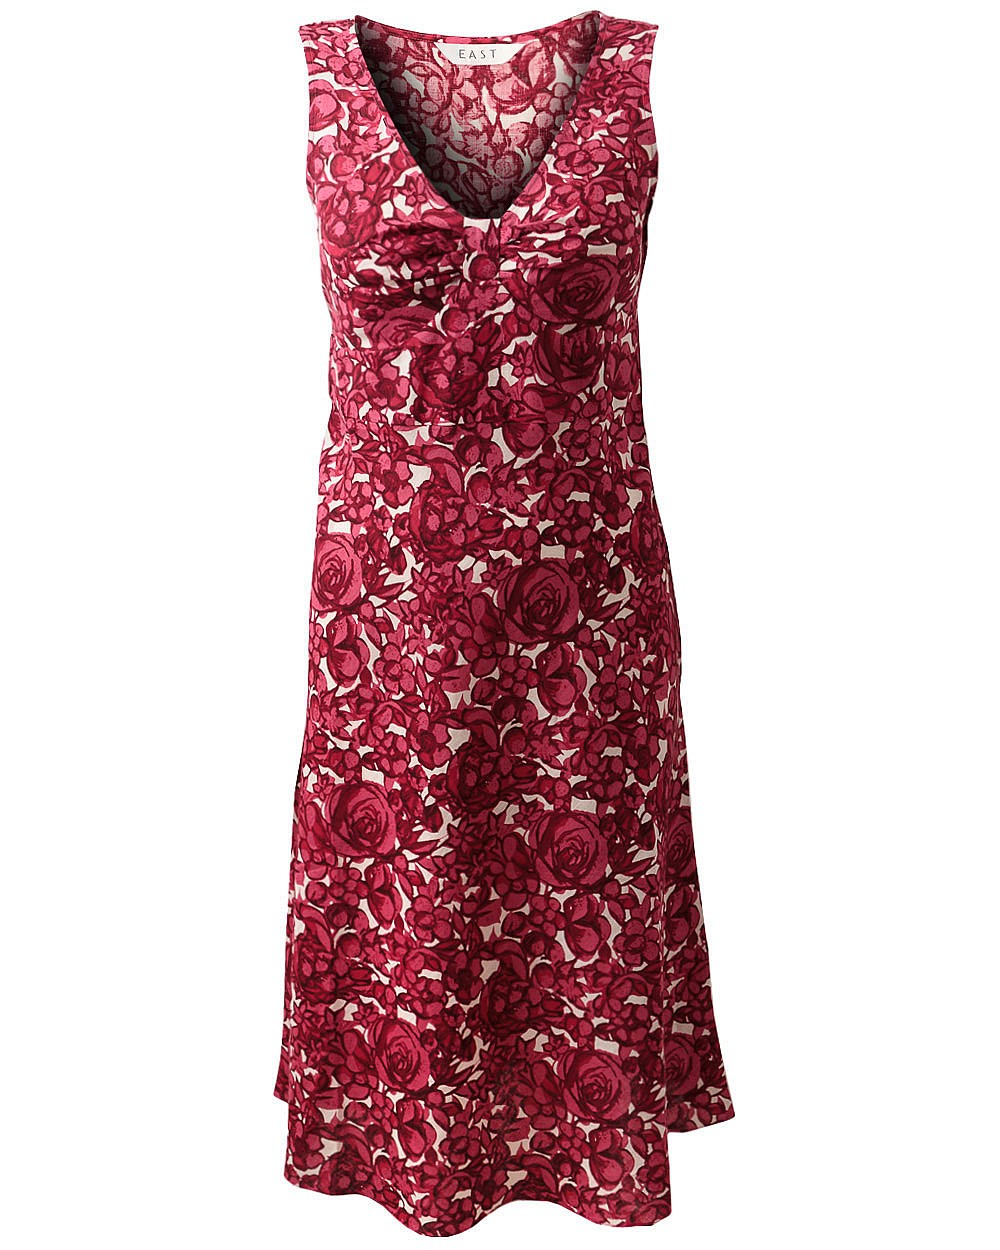 EAST-AVRIL-PRINTED-LINEN-DRESS-V-NECKLINE-PINK-100-LINEN-SIZES-8-20